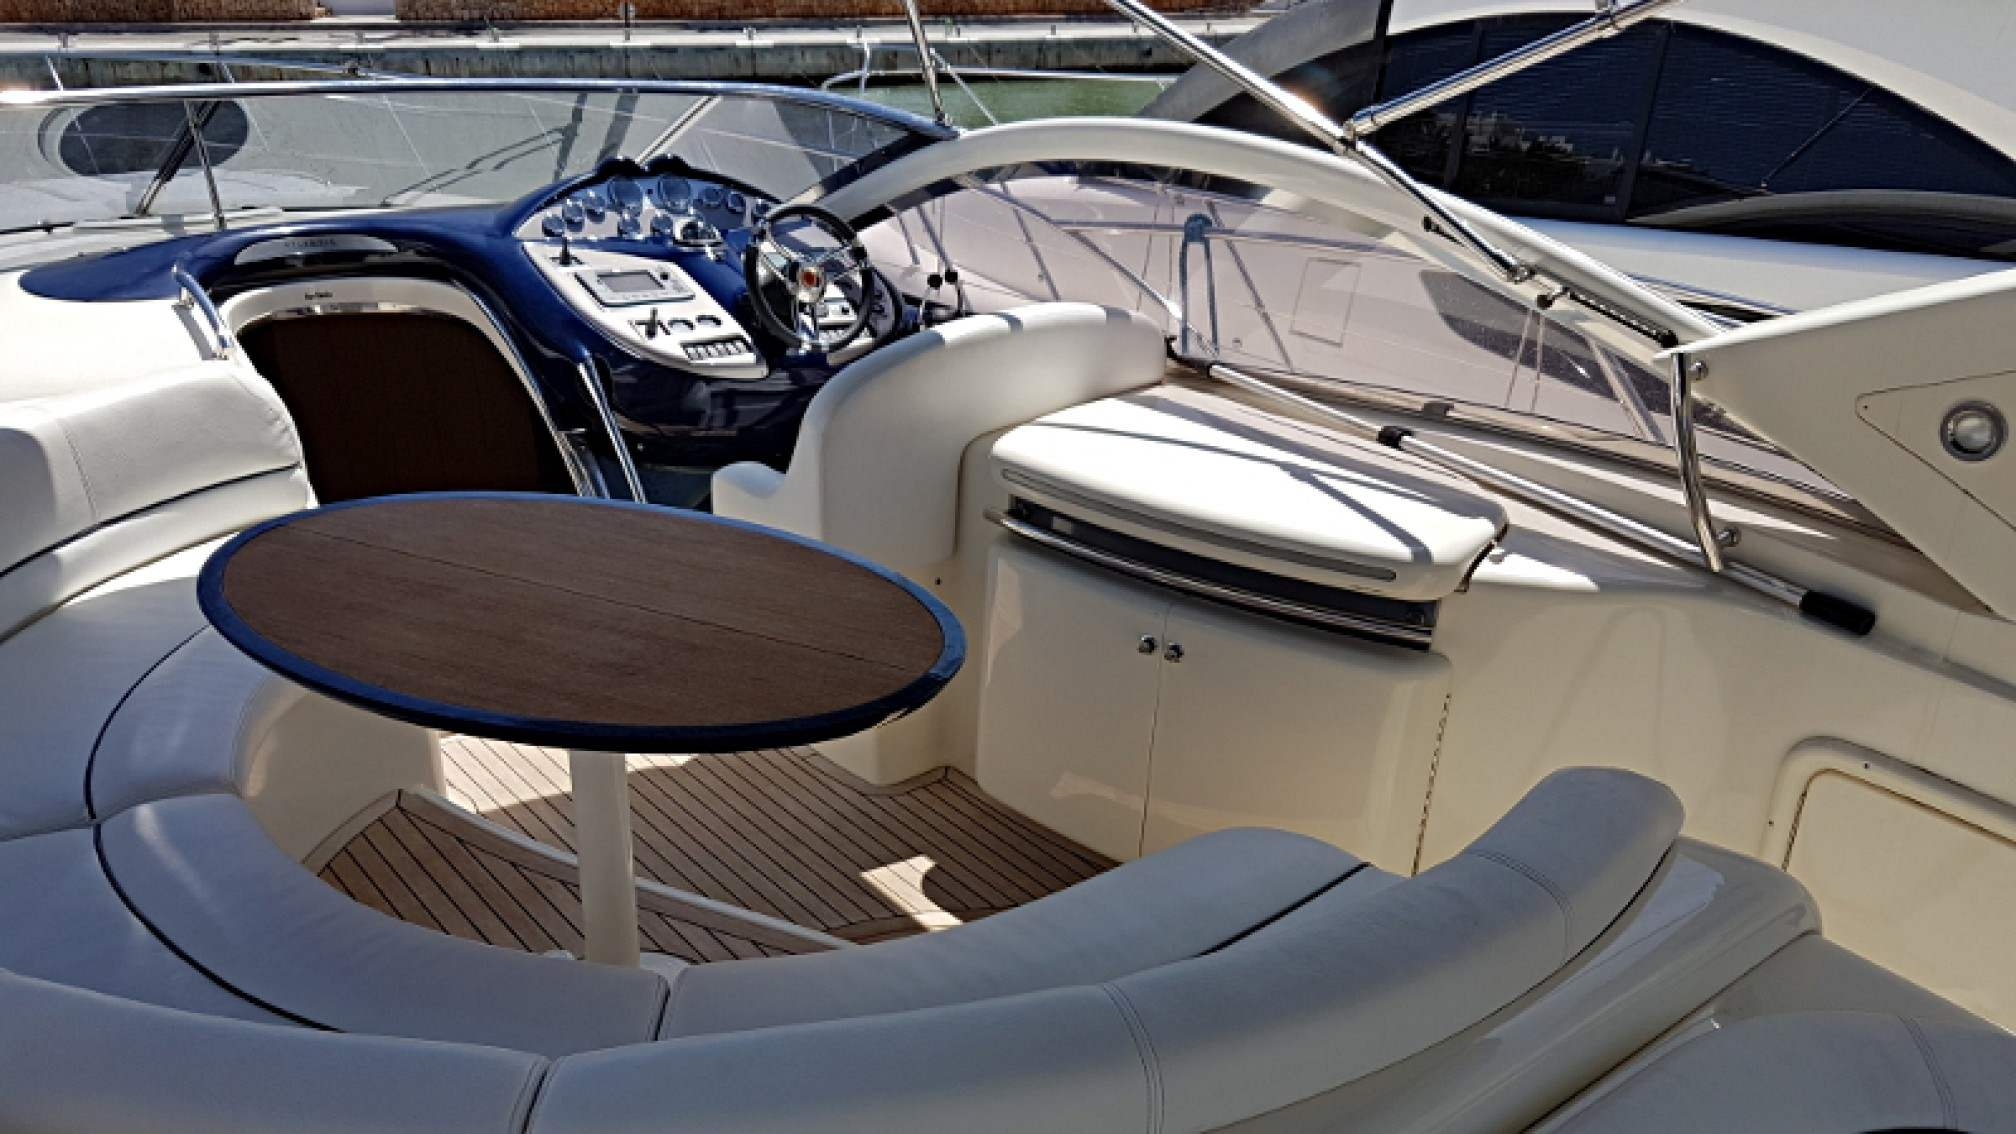 Gobbi Atlantis 47 charter motorboat outdoors